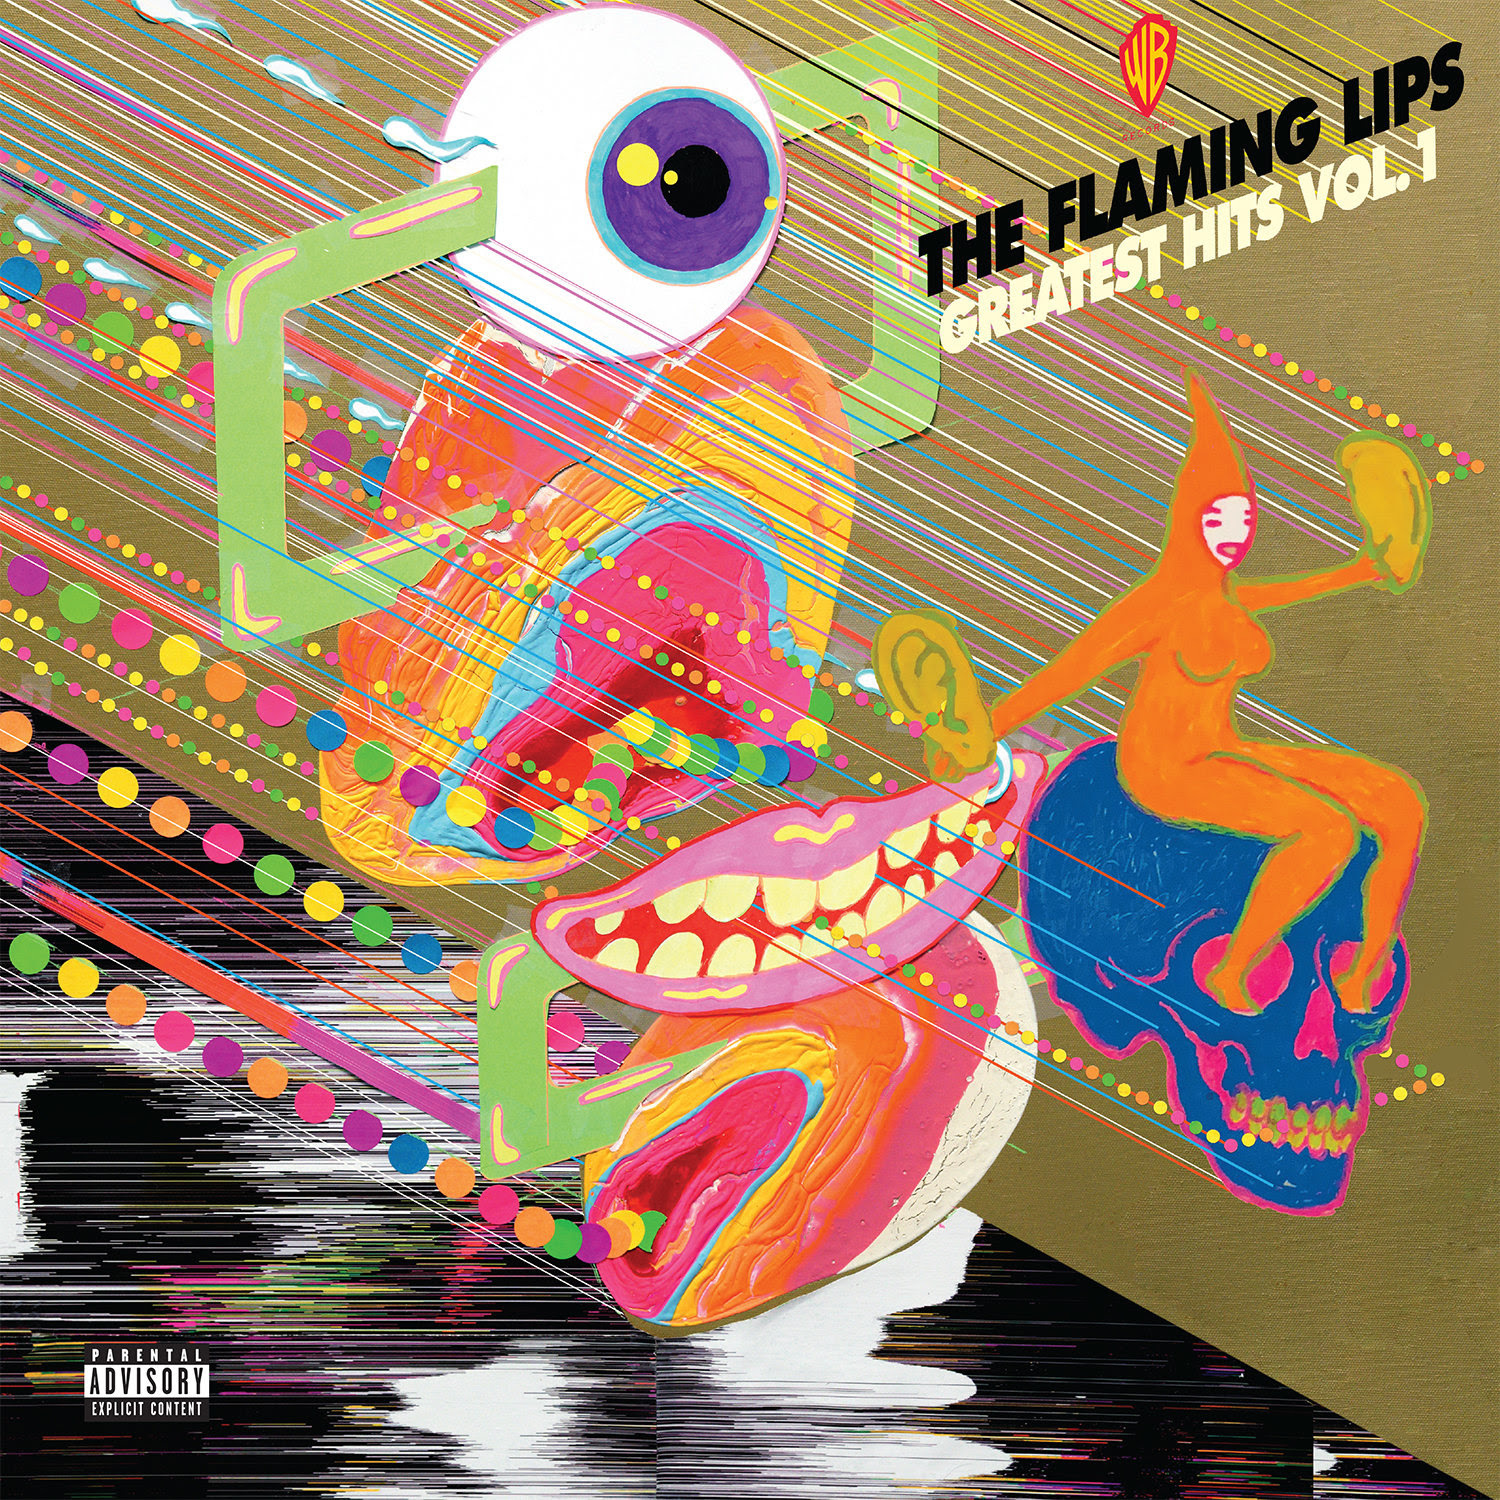 Greatest Hits Vol 1 (LP) by The Flaming Lips image